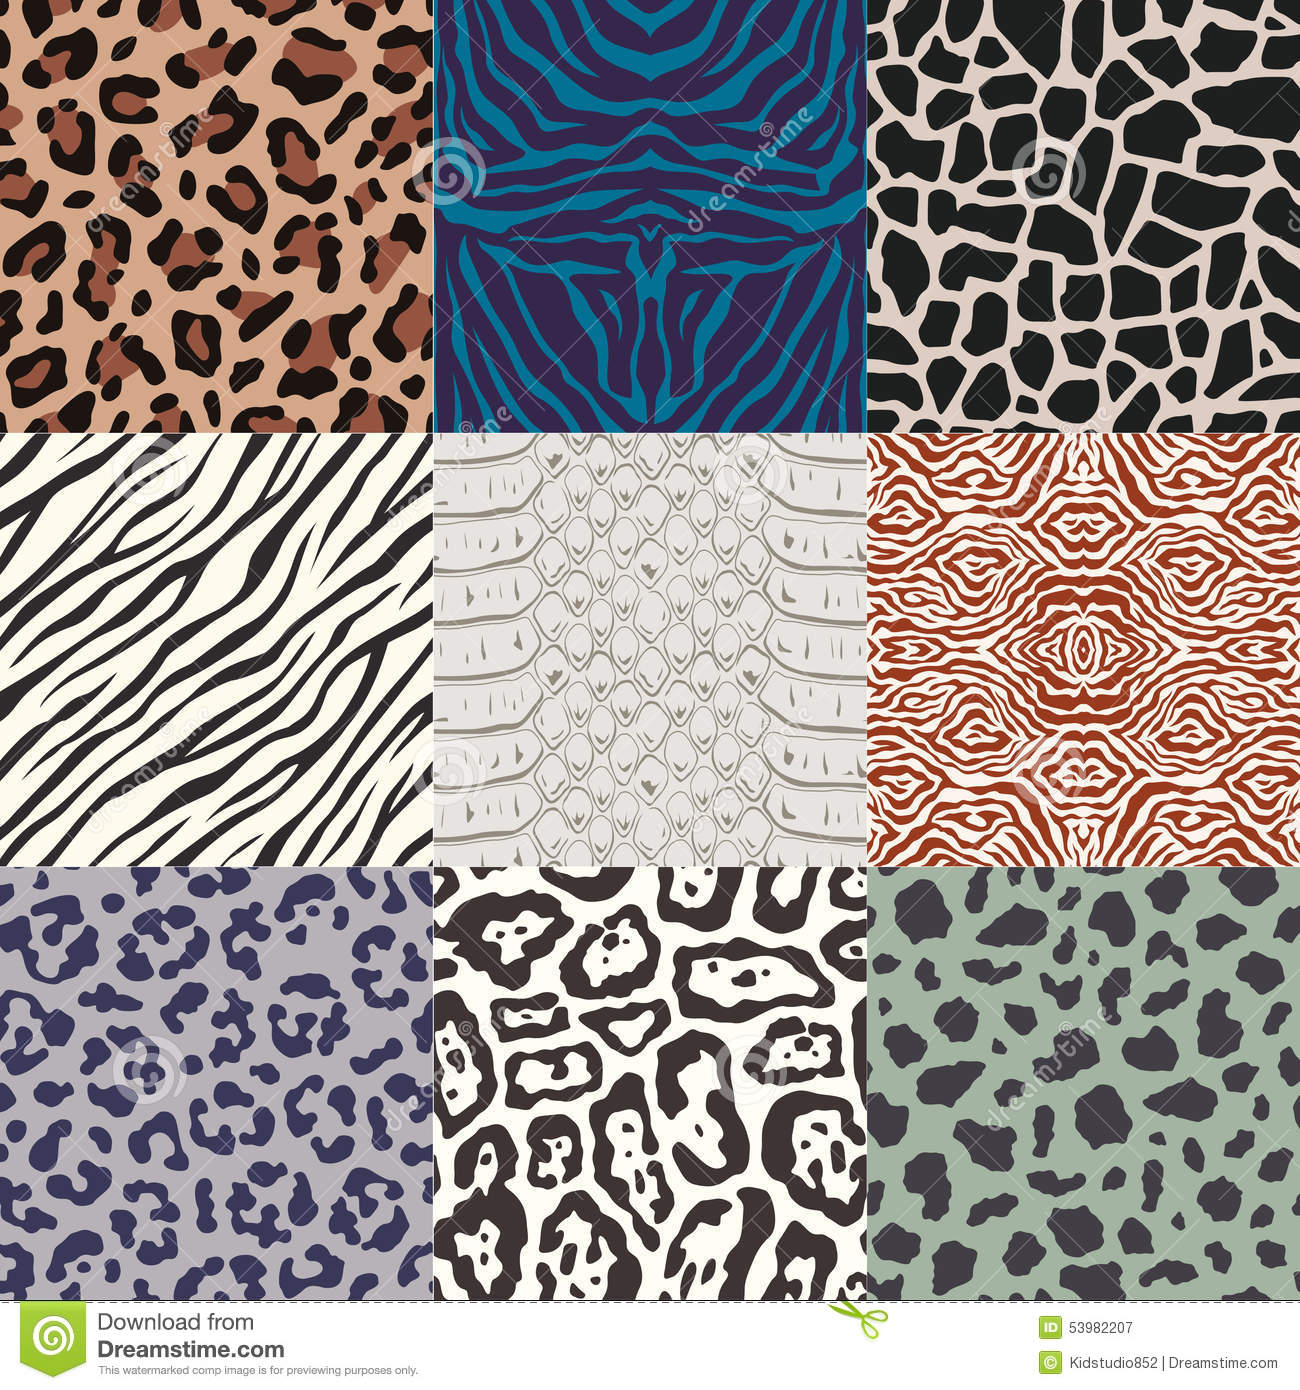 animal skin patterns seamless - photo #24